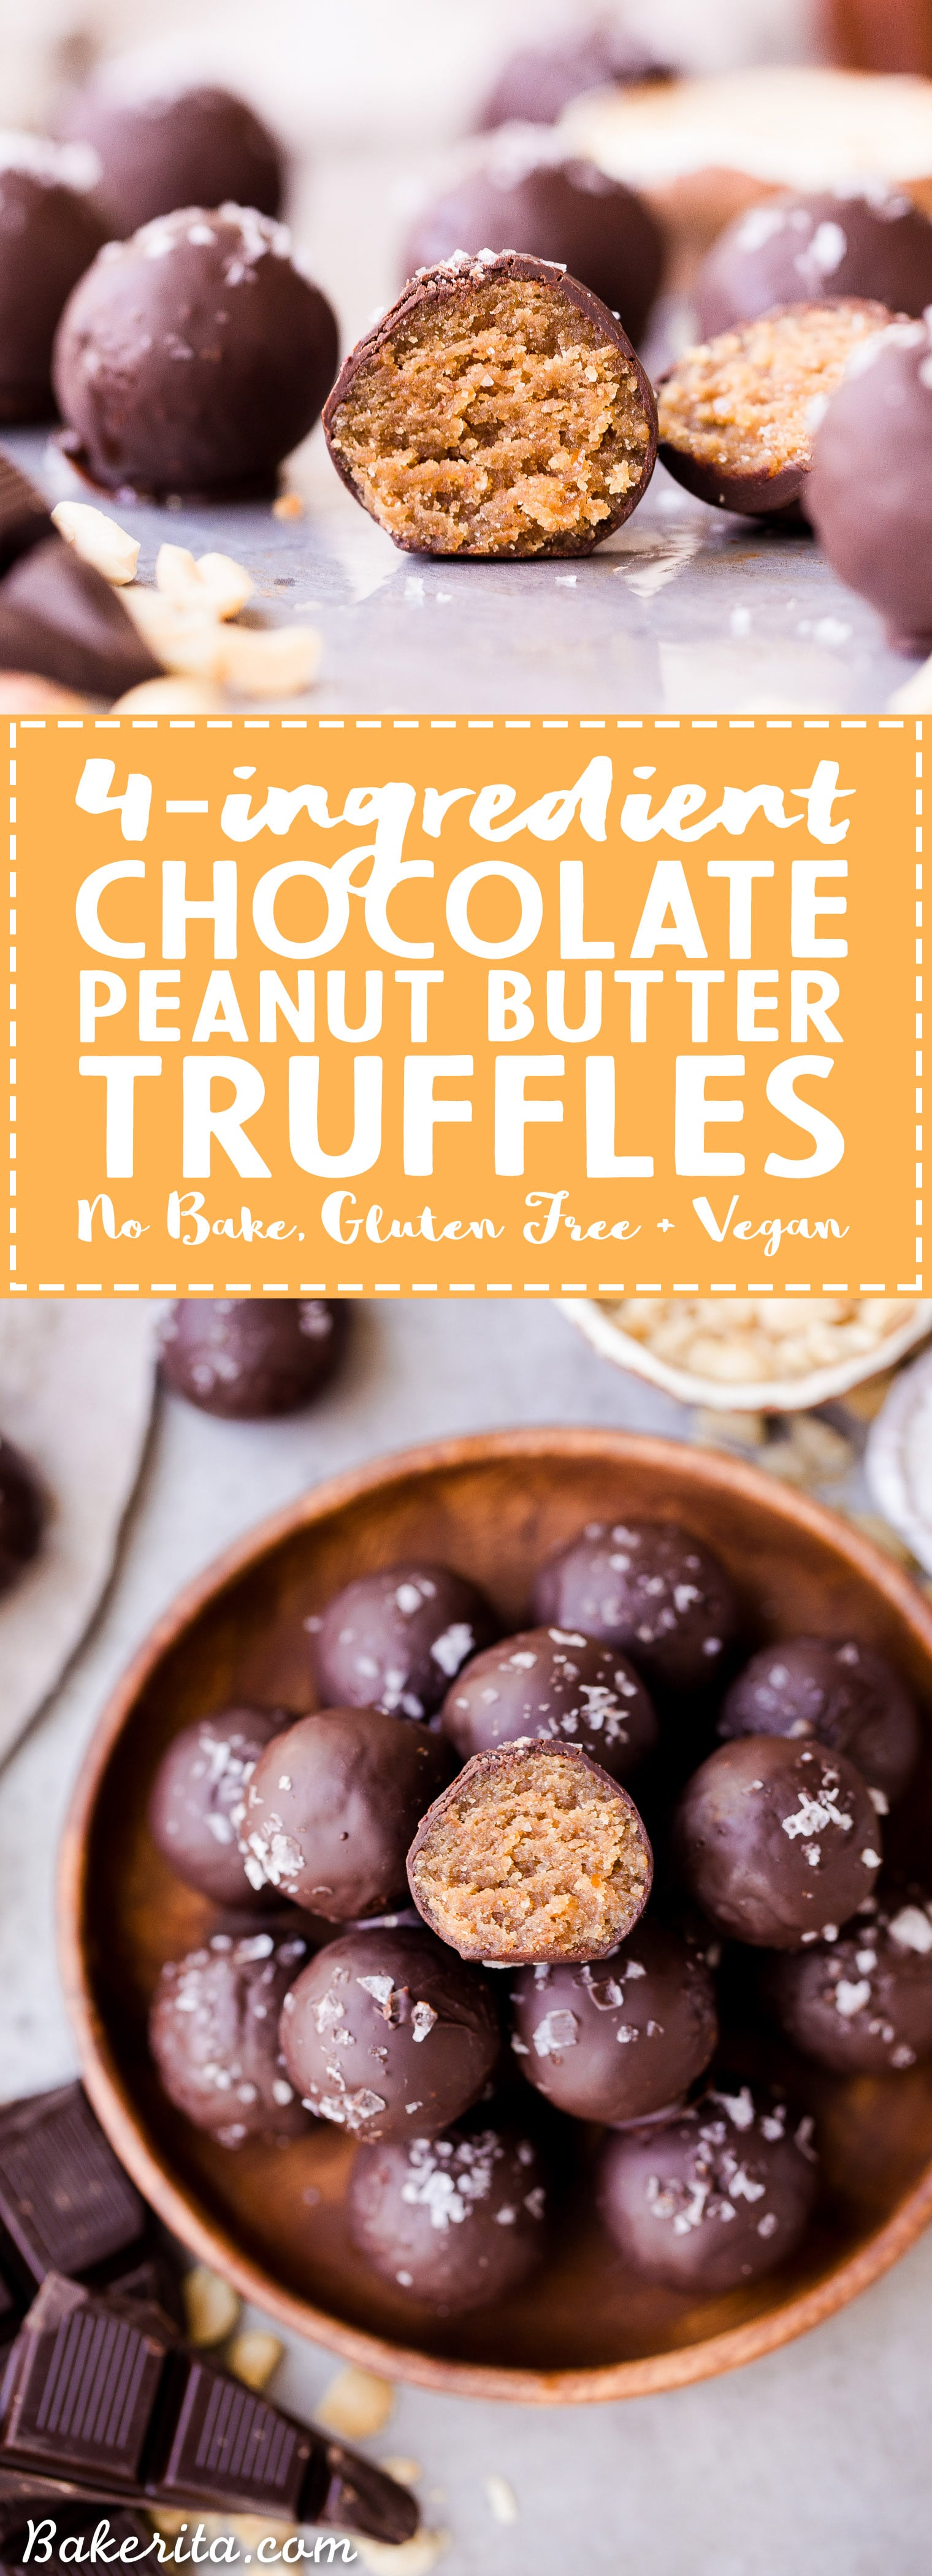 These Chocolate Peanut Butter Truffles are decadent, delicious, and made with just FOUR super simple + clean ingredients. They're gluten-free, vegan and sweetened with dates - they can also easily be made paleo by using a different nut butter! These truffles are sure to satisfy your chocolate peanut butter candy cravings.